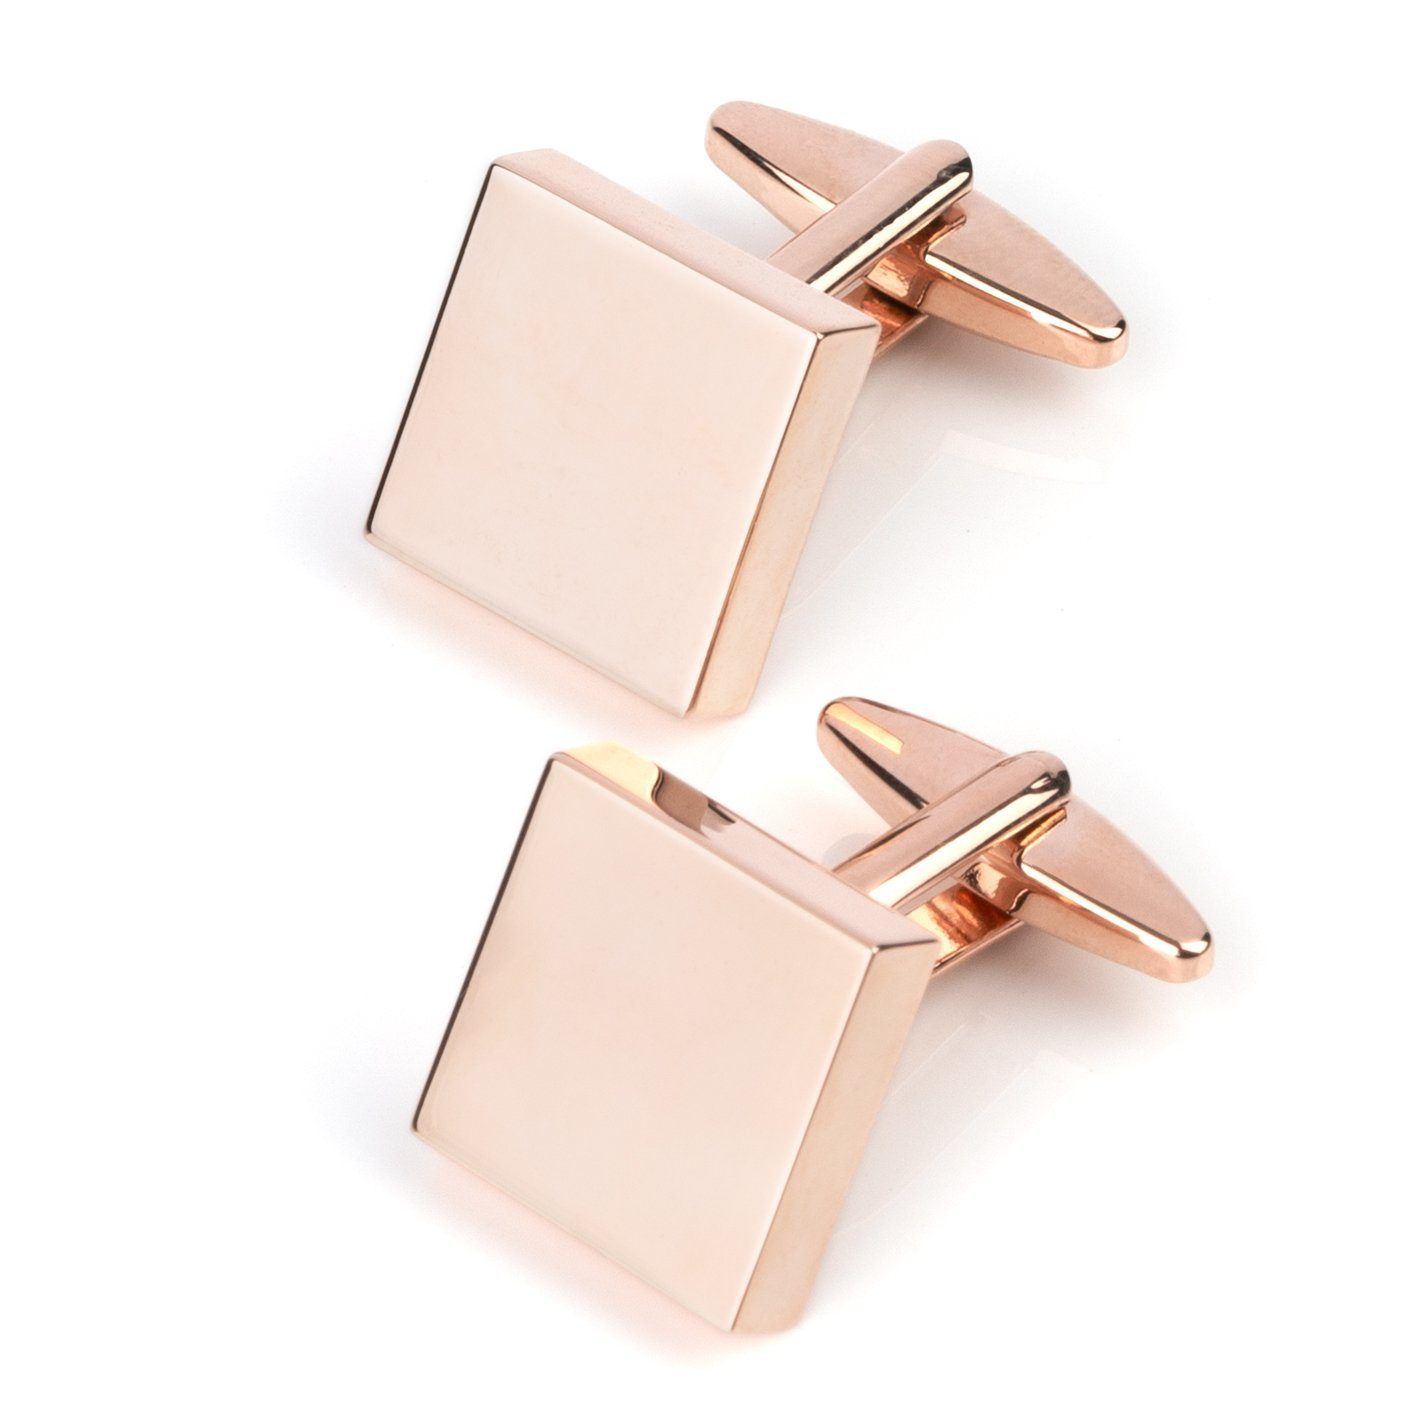 Rose Gold Square Engravable Cufflinks Classic & Modern Cufflinks Clinks Australia